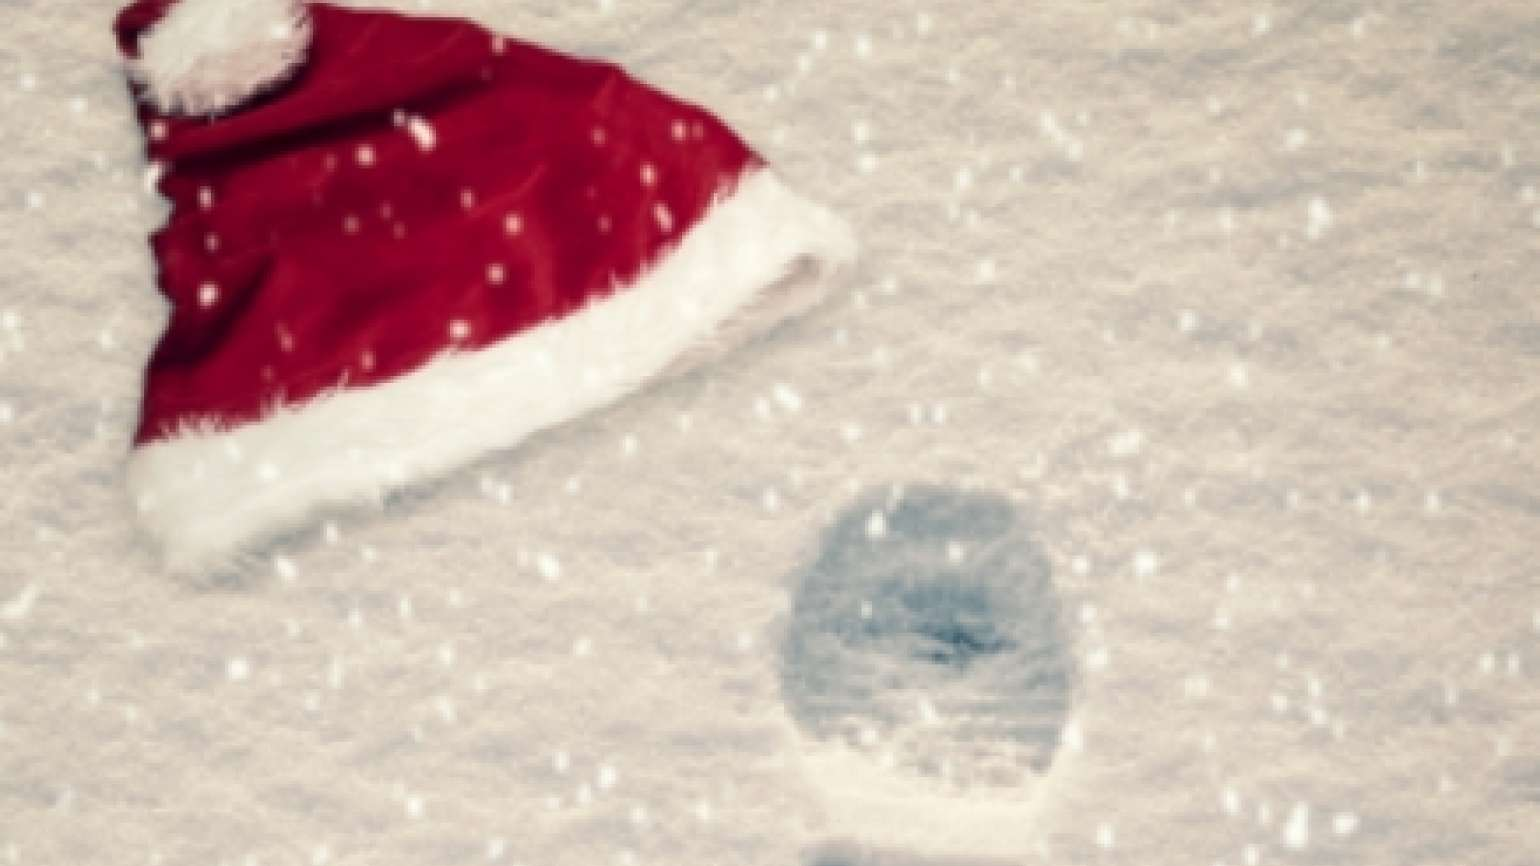 Santa hat and bootprints in the snow